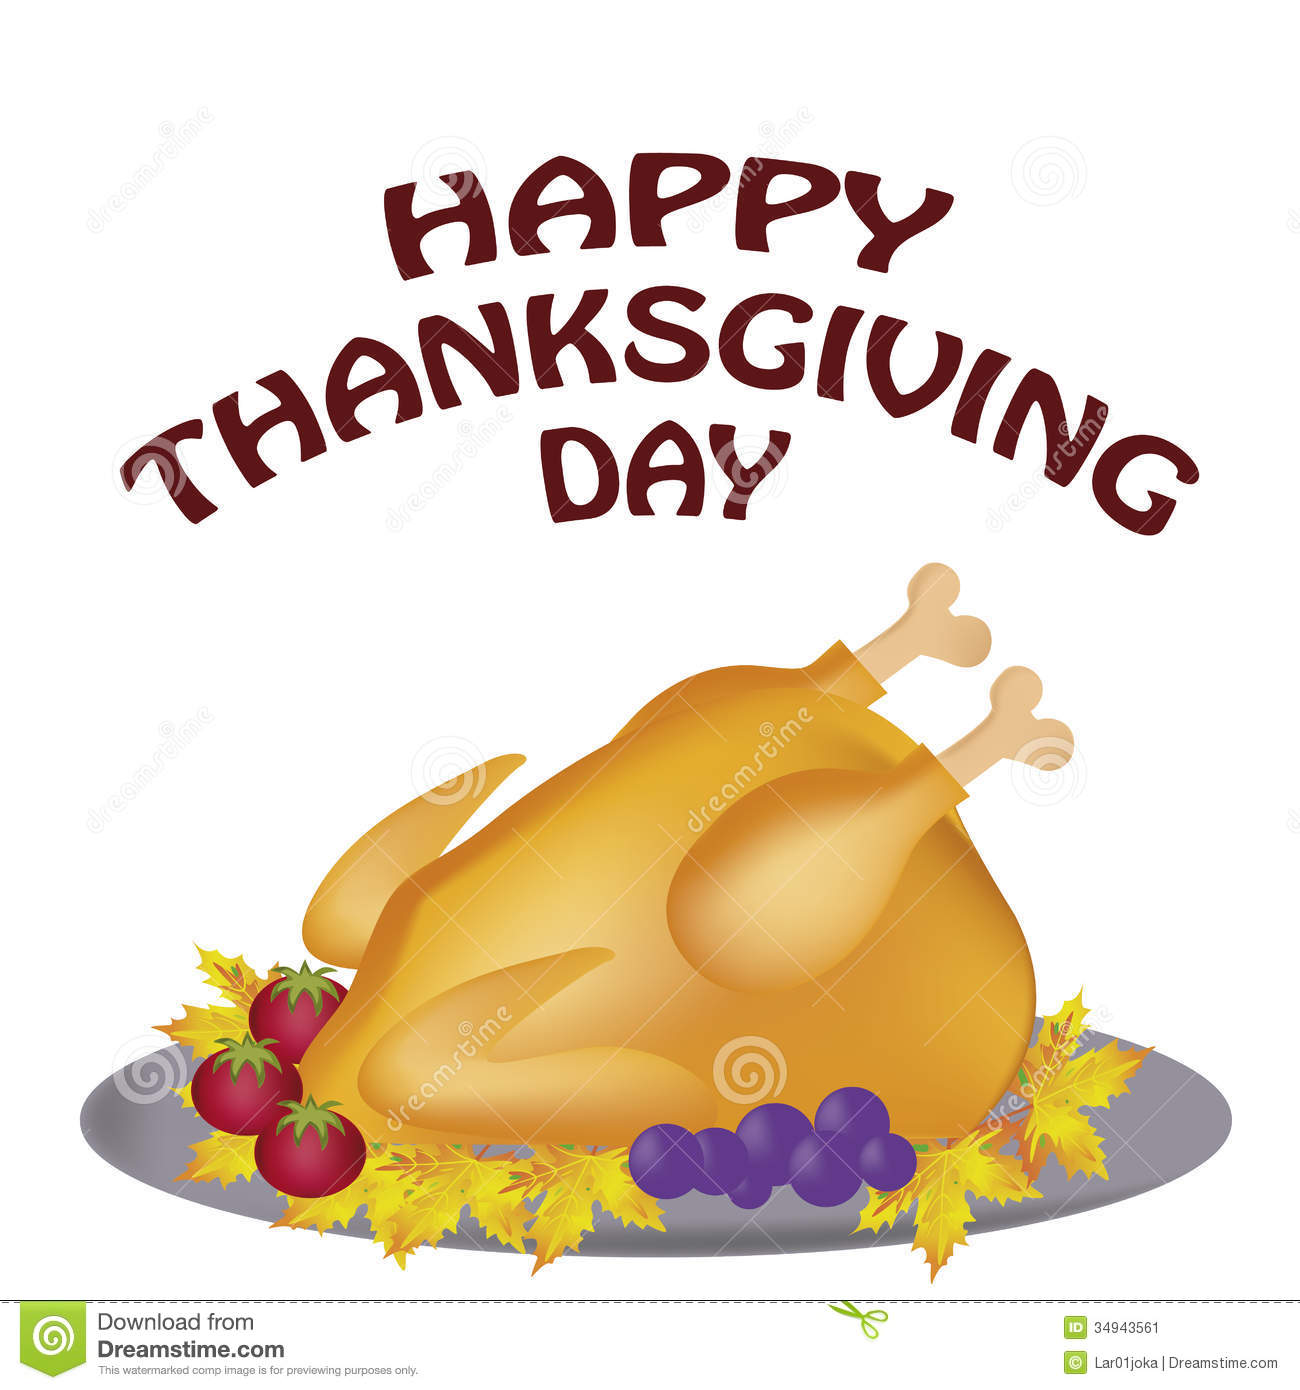 to wear - Food day Thanksgiving pictures video